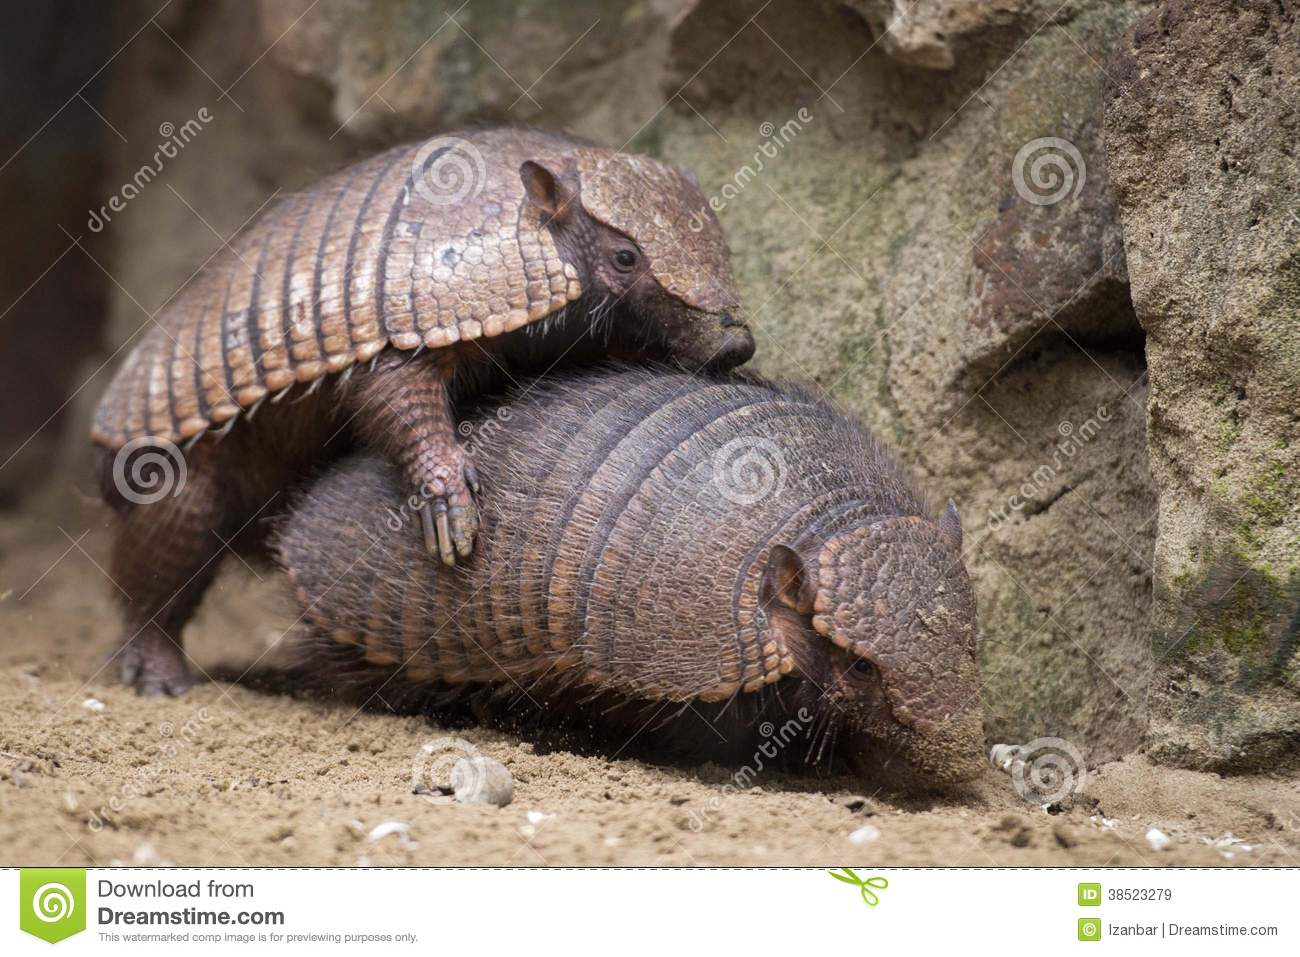 armadillo-portrait-close-up-having-sex-3